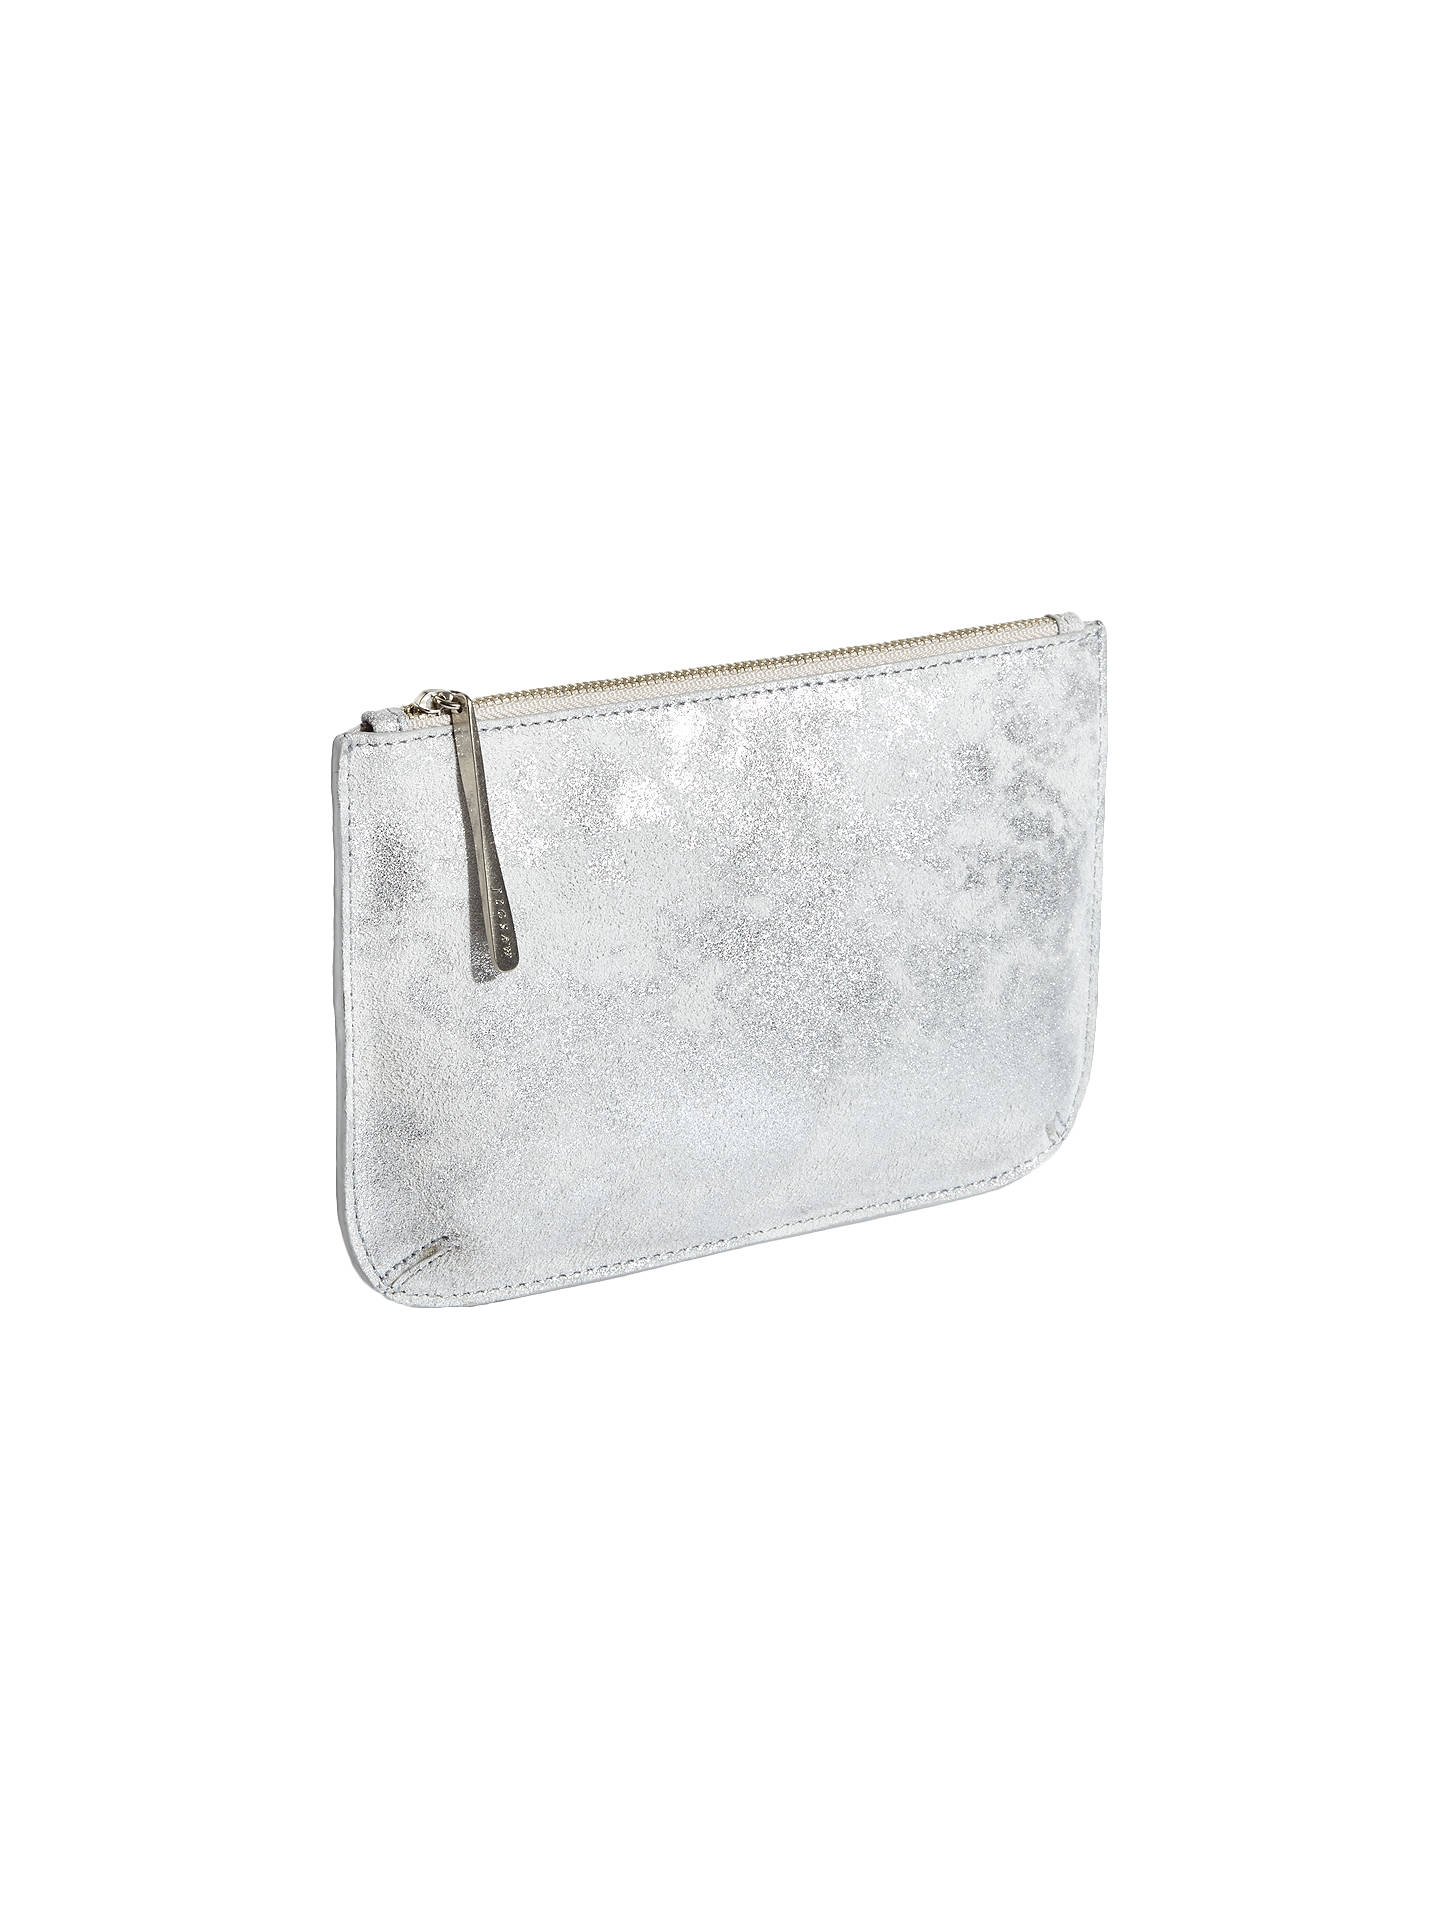 9d64733ed72 Buy Jigsaw Alba Medium Textured Leather Pouch, Silver Online at  johnlewis.com ...